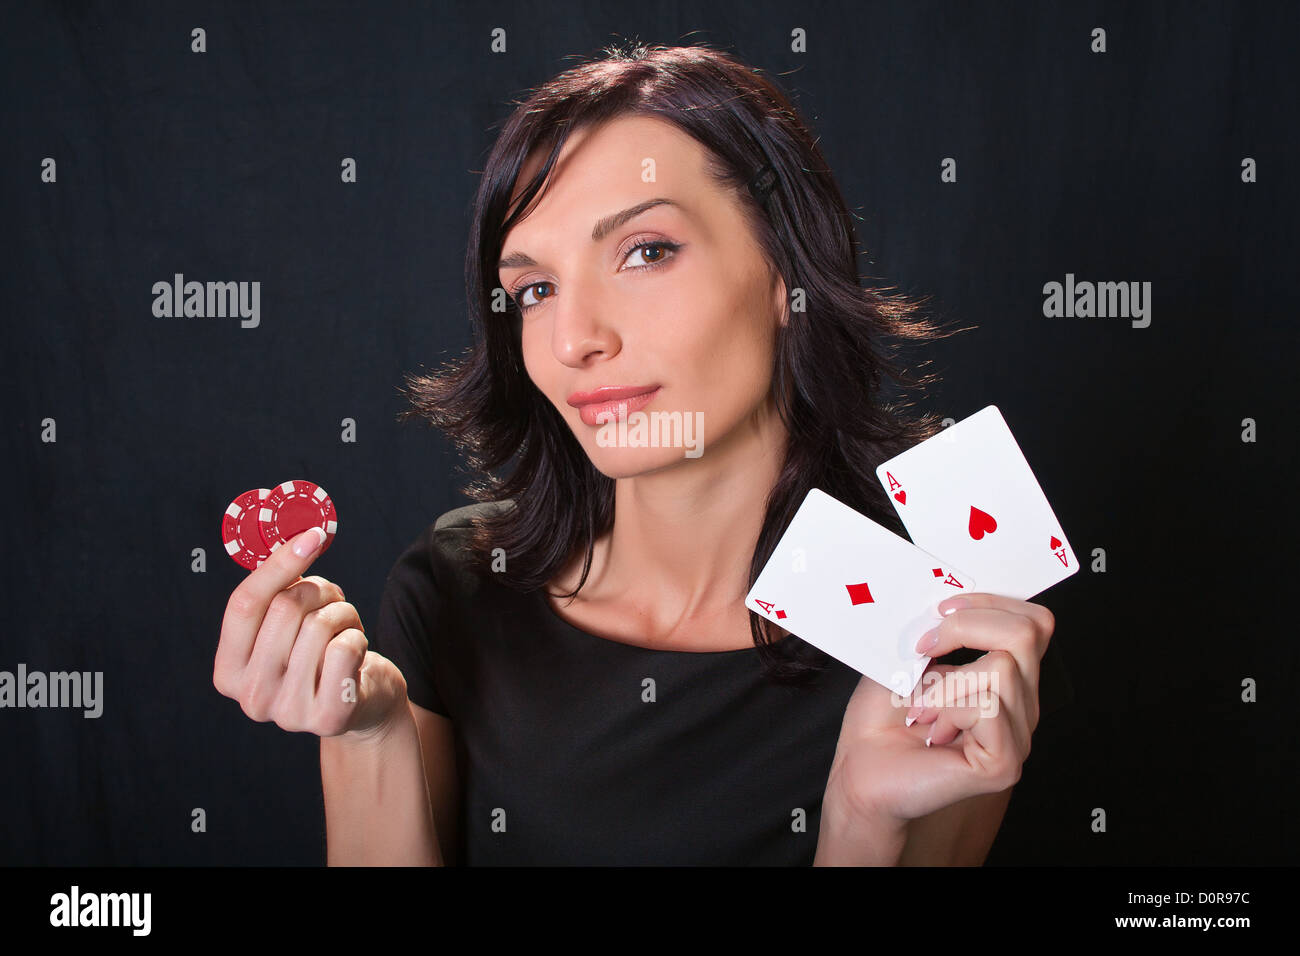 Gambler with cards and chips. - Stock Image